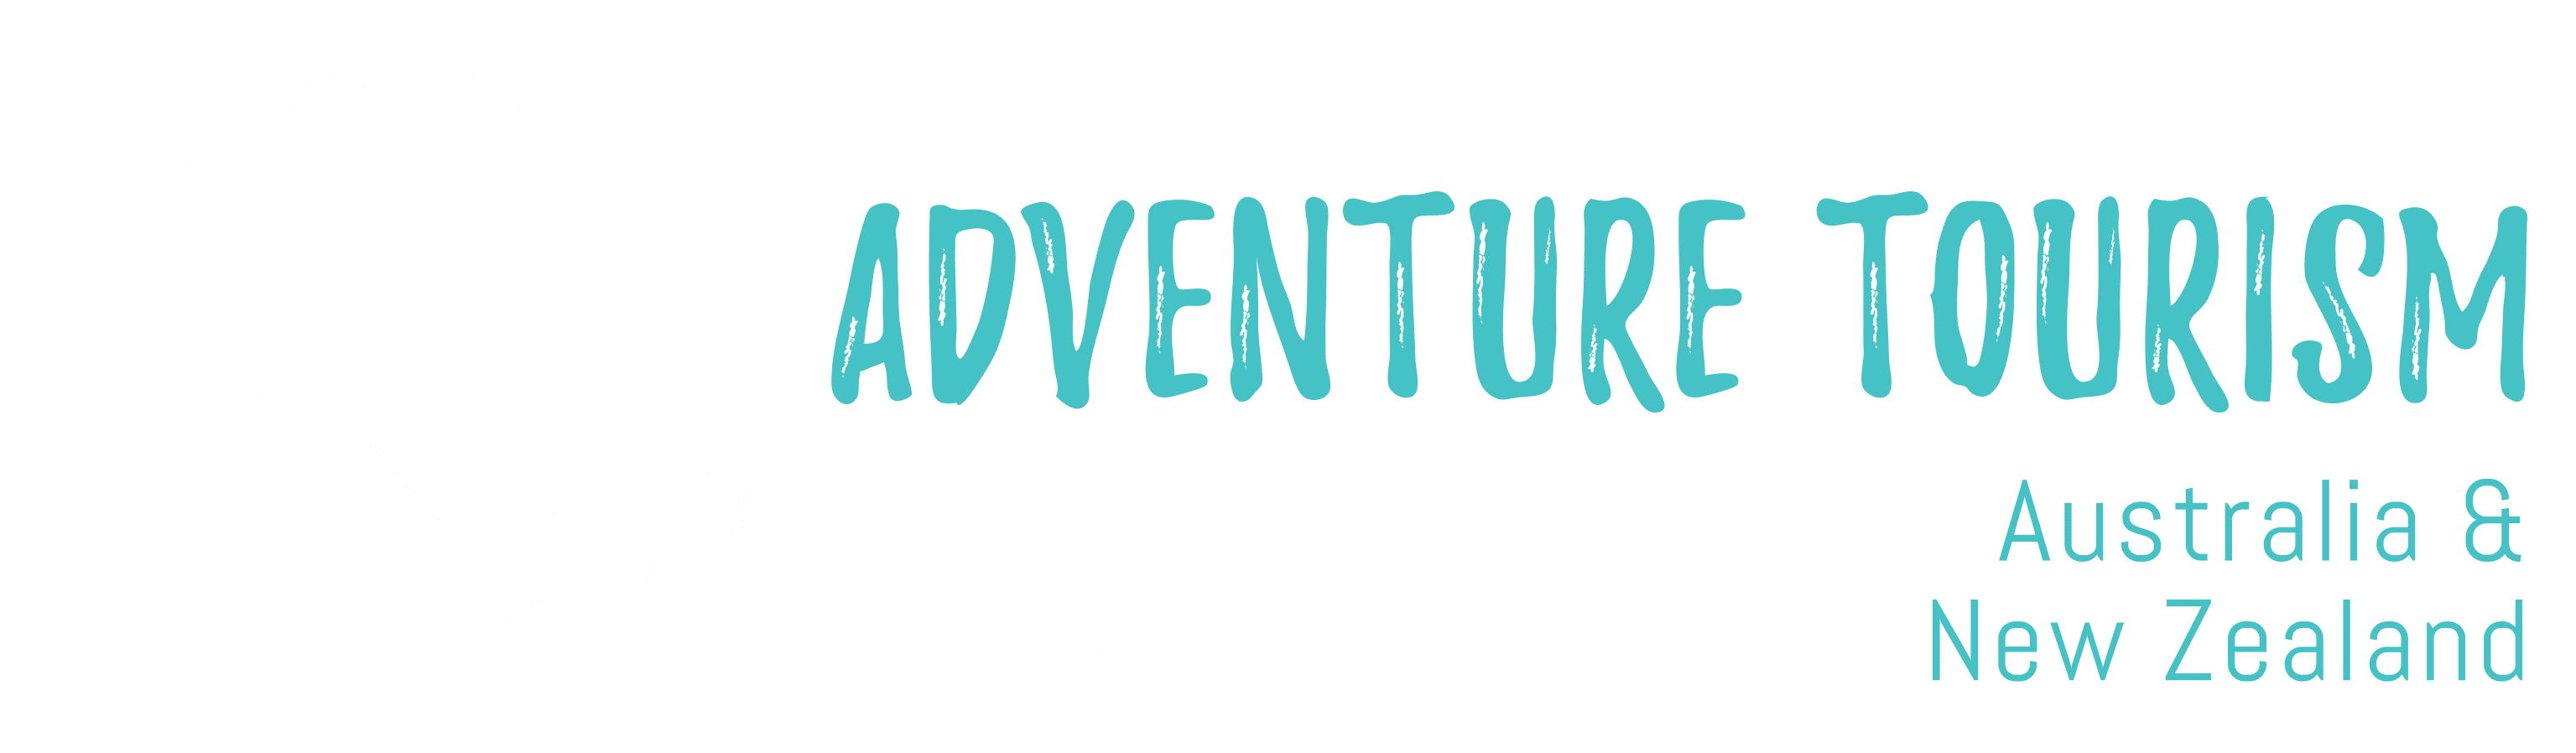 Adventure Tourism Awards